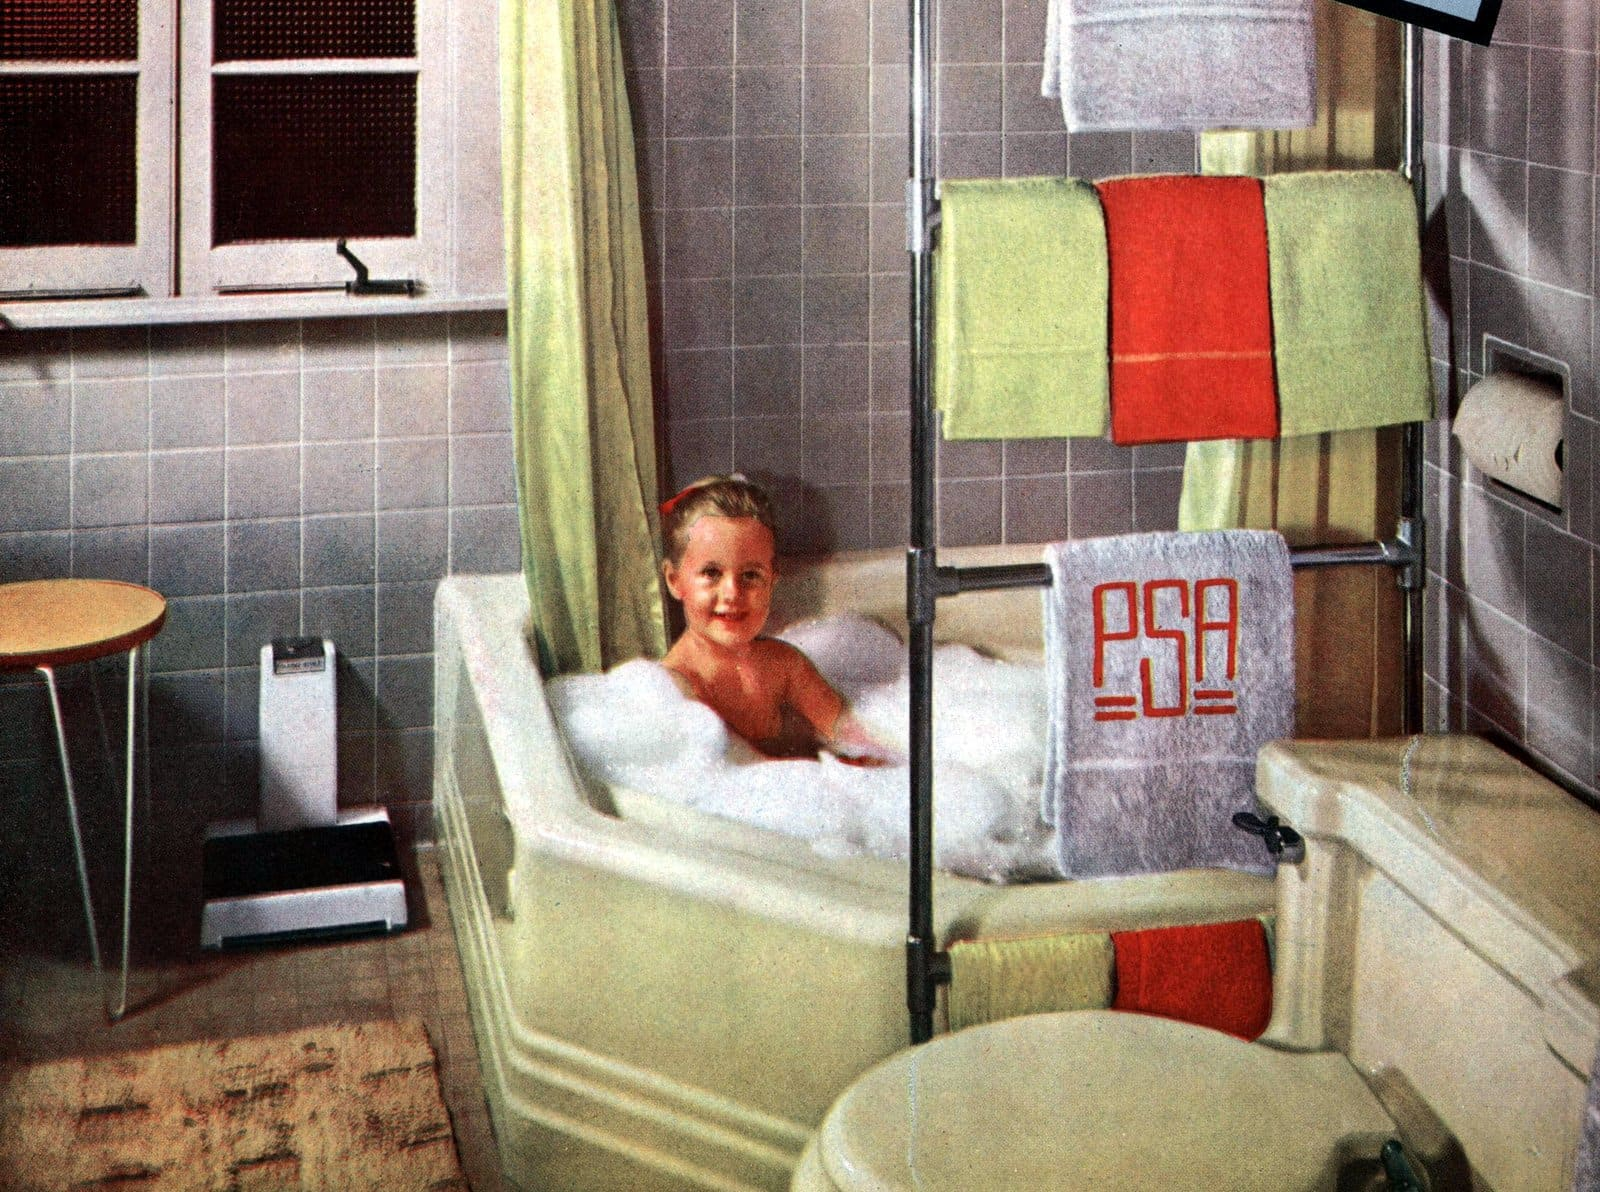 Gray wall tile with pale green bathroom fixtures from the 1950s